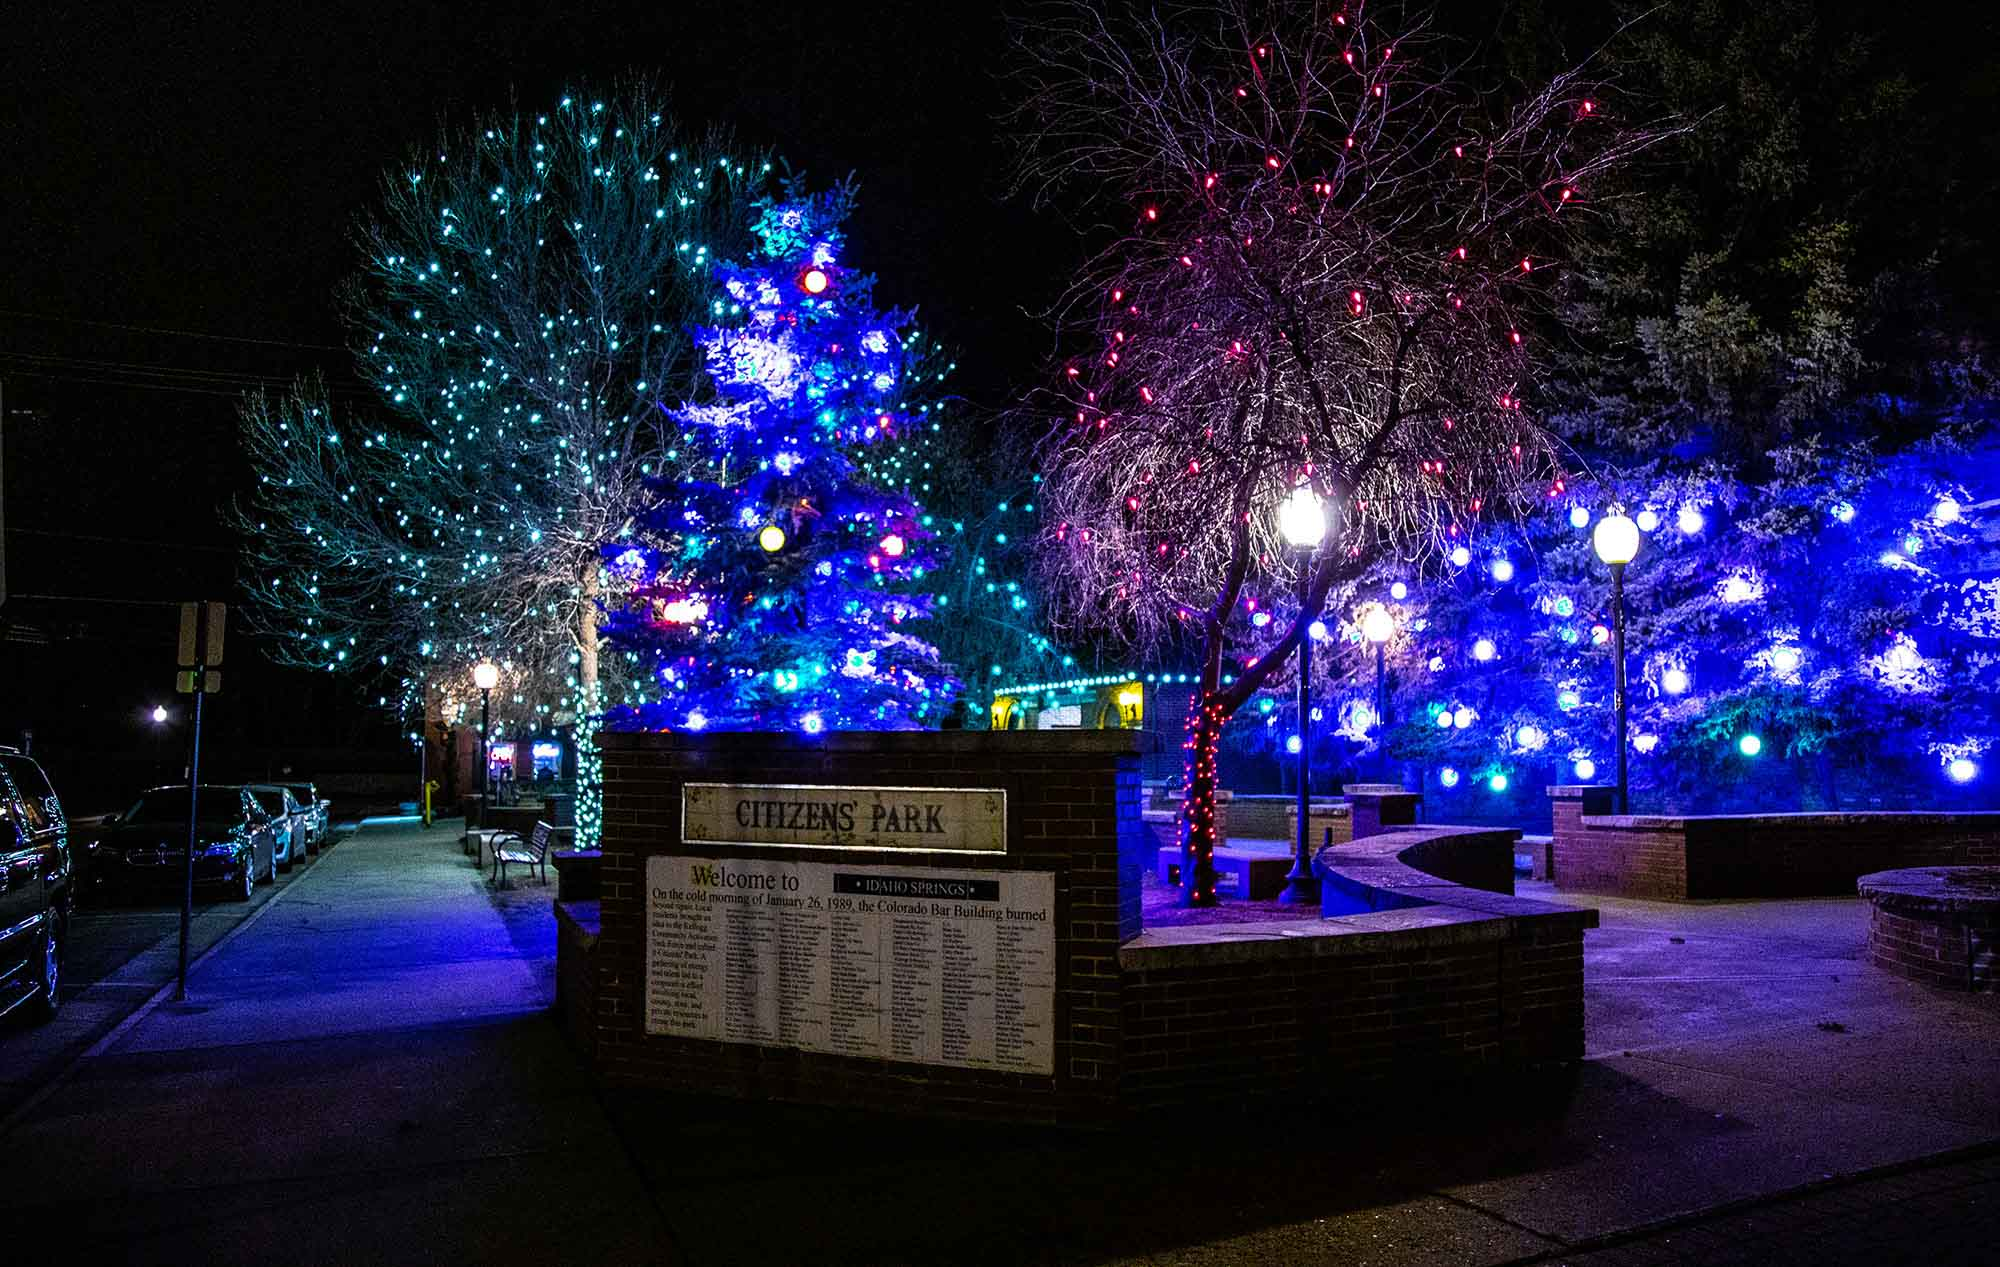 Citizens Park Tree Lighting Idaho Springs, Colorado